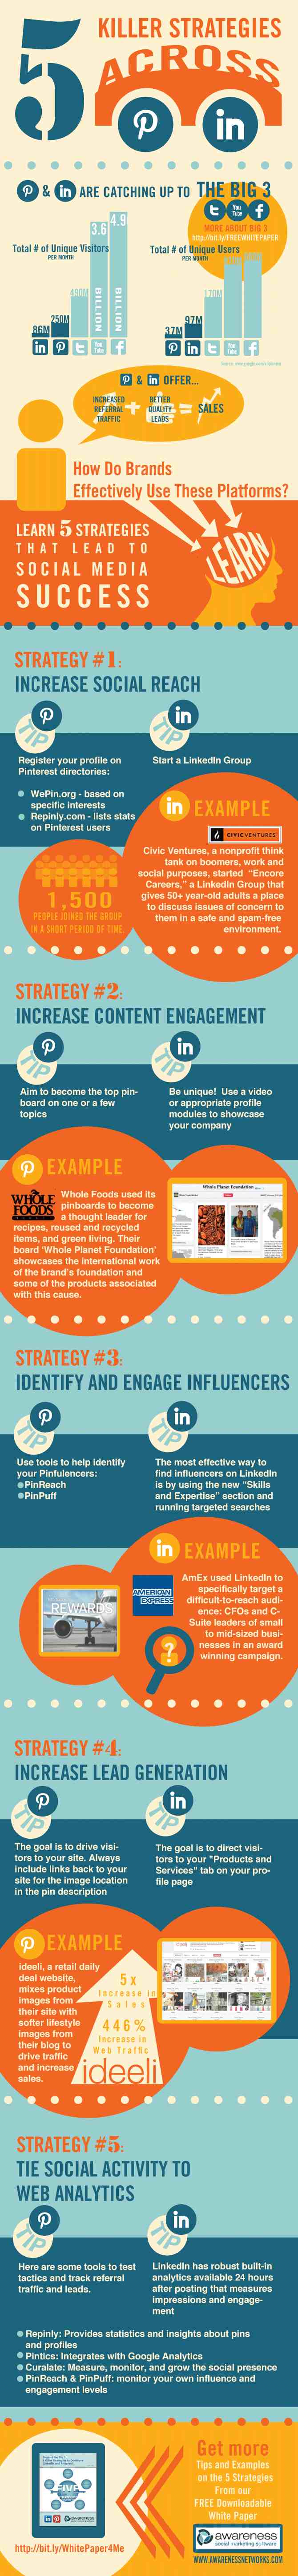 #Infographic: Beyond the Big 3: Strategies for Brands to Dominate Pinterest and LinkedIn #SocialMedia #Branding